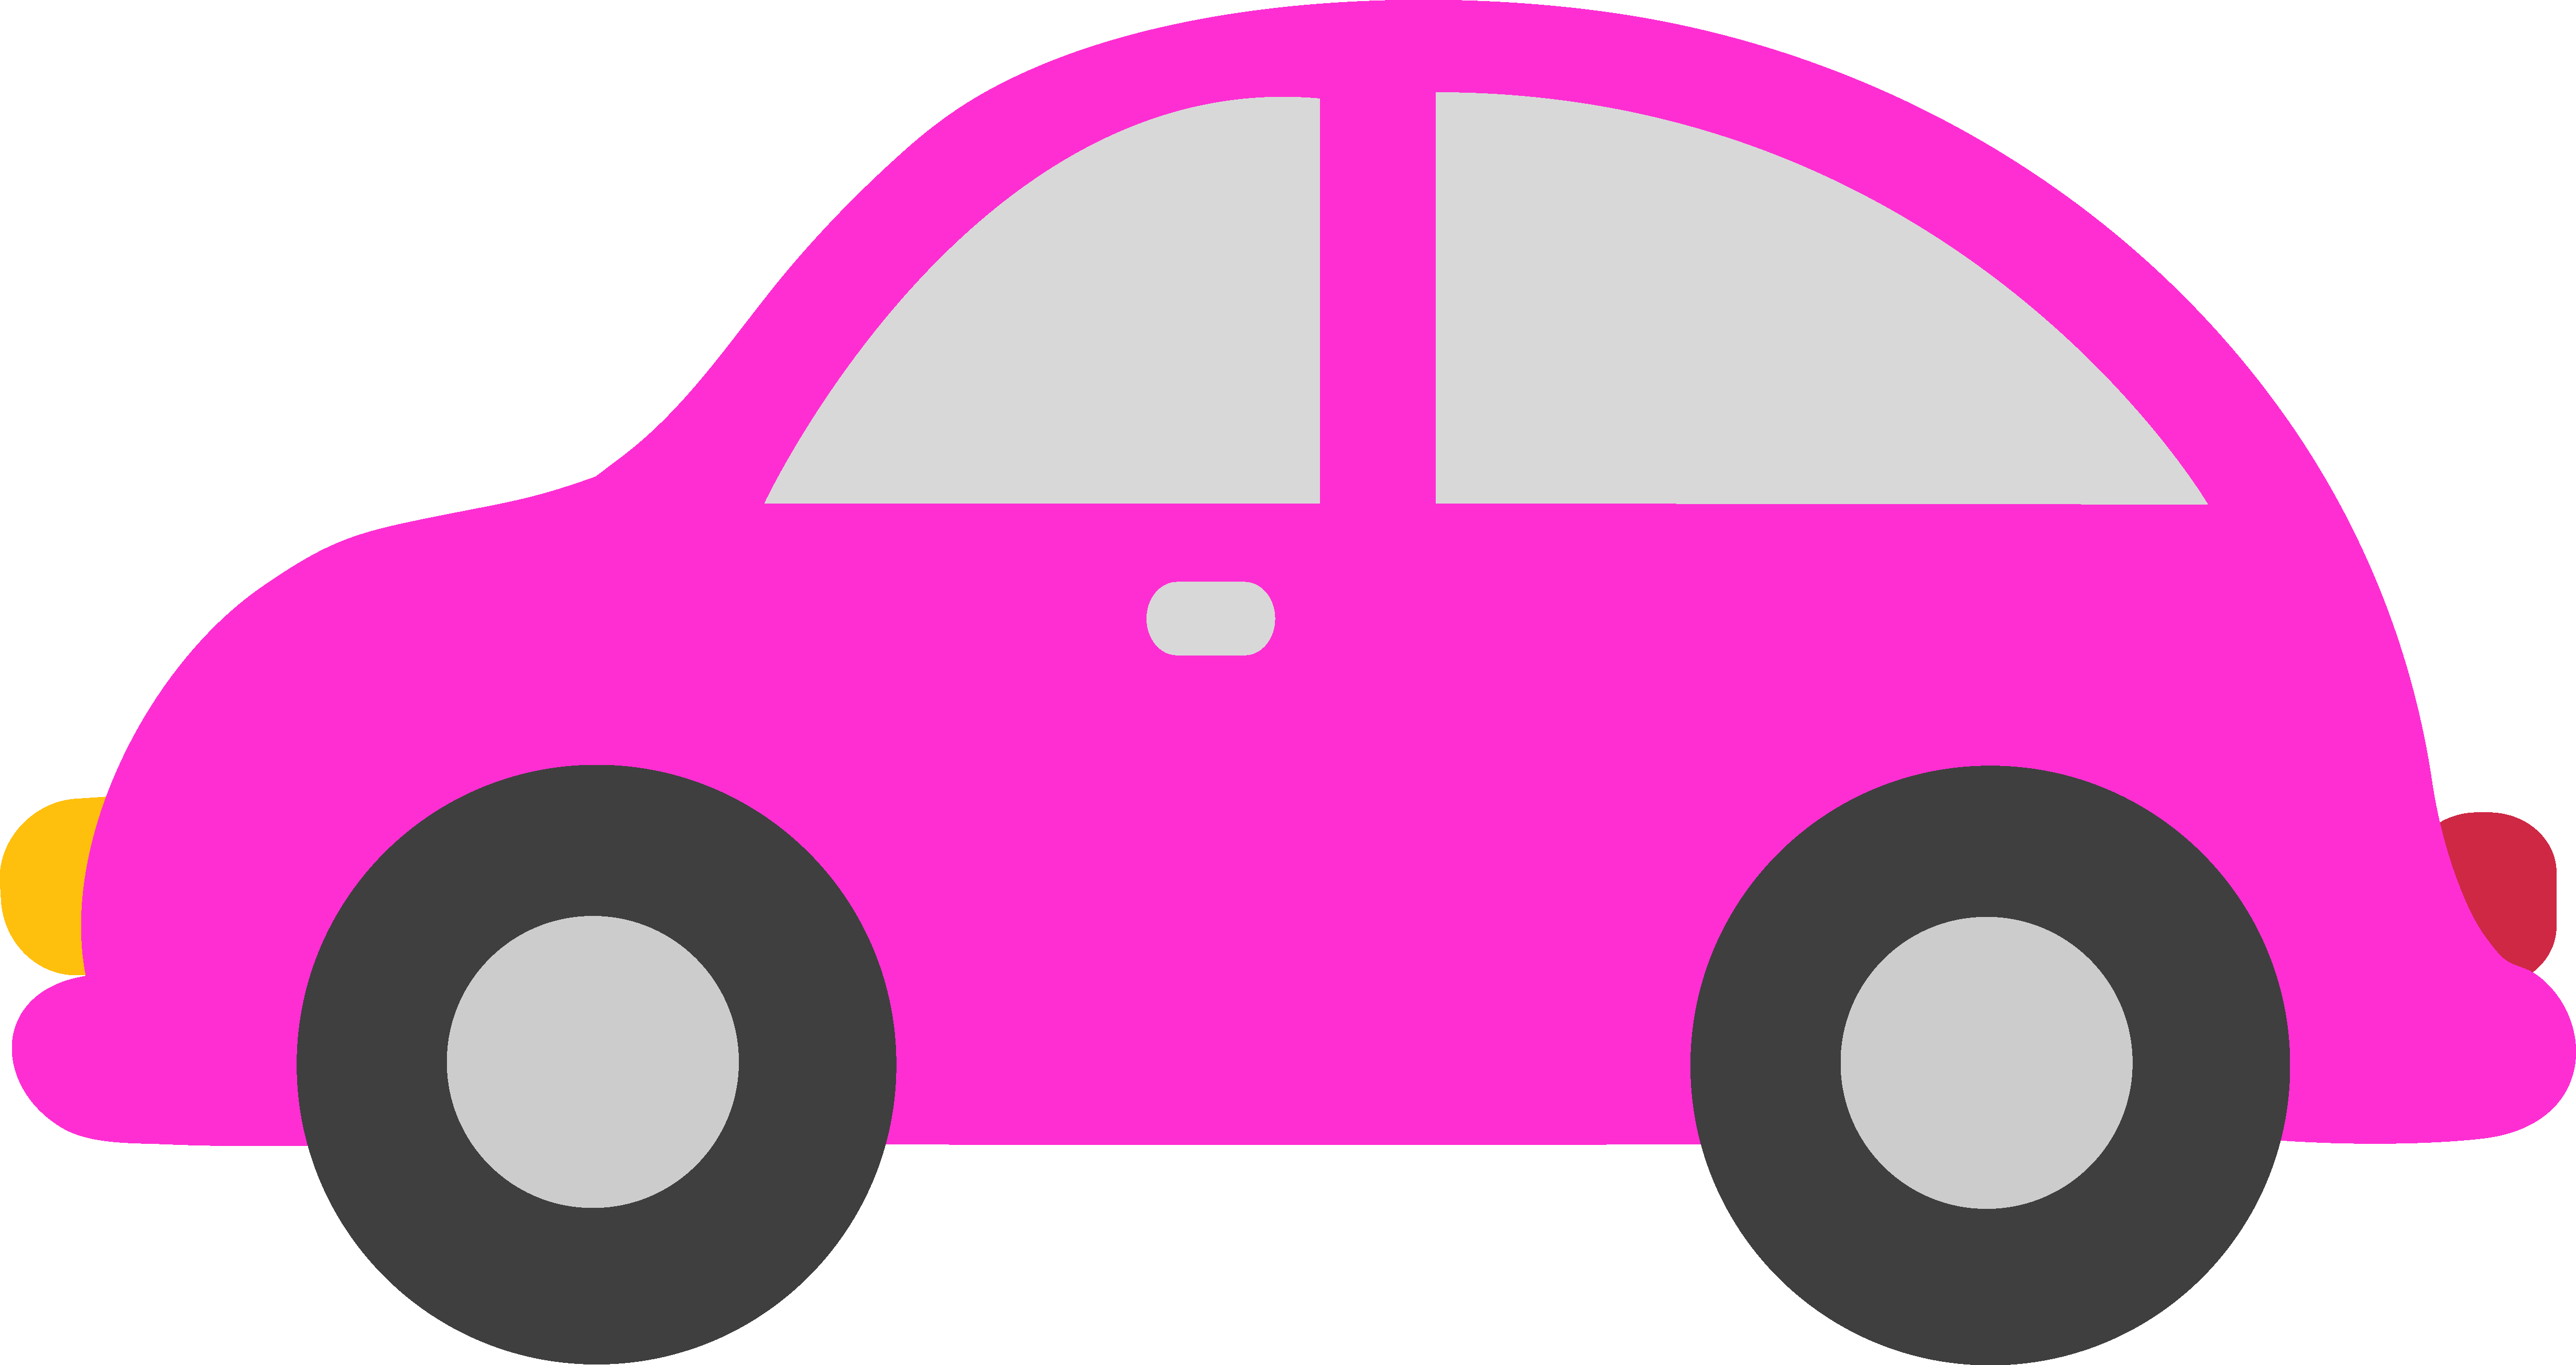 4916x2605 Toy Car Png Free Transparent Toy Car.png Images. Pluspng